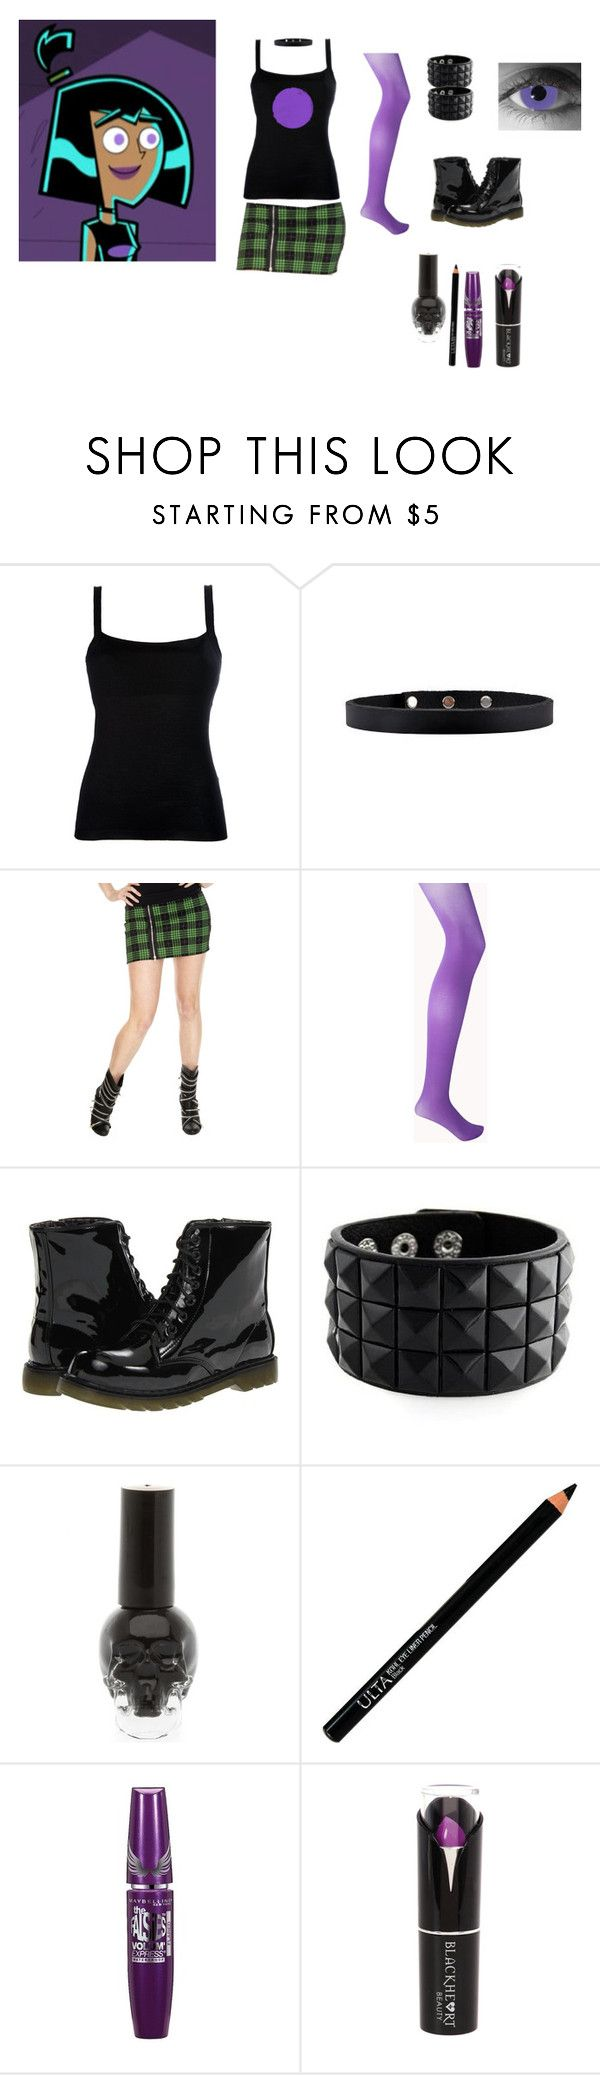 """Cosplay series: Sam Manson (Danny Phantom)"" by miss-morbid-13 ❤ liked on Polyvore featuring Valentino, Tripp, Forever 21, Dirty Laundry, Vision, ULTA and Maybelline"